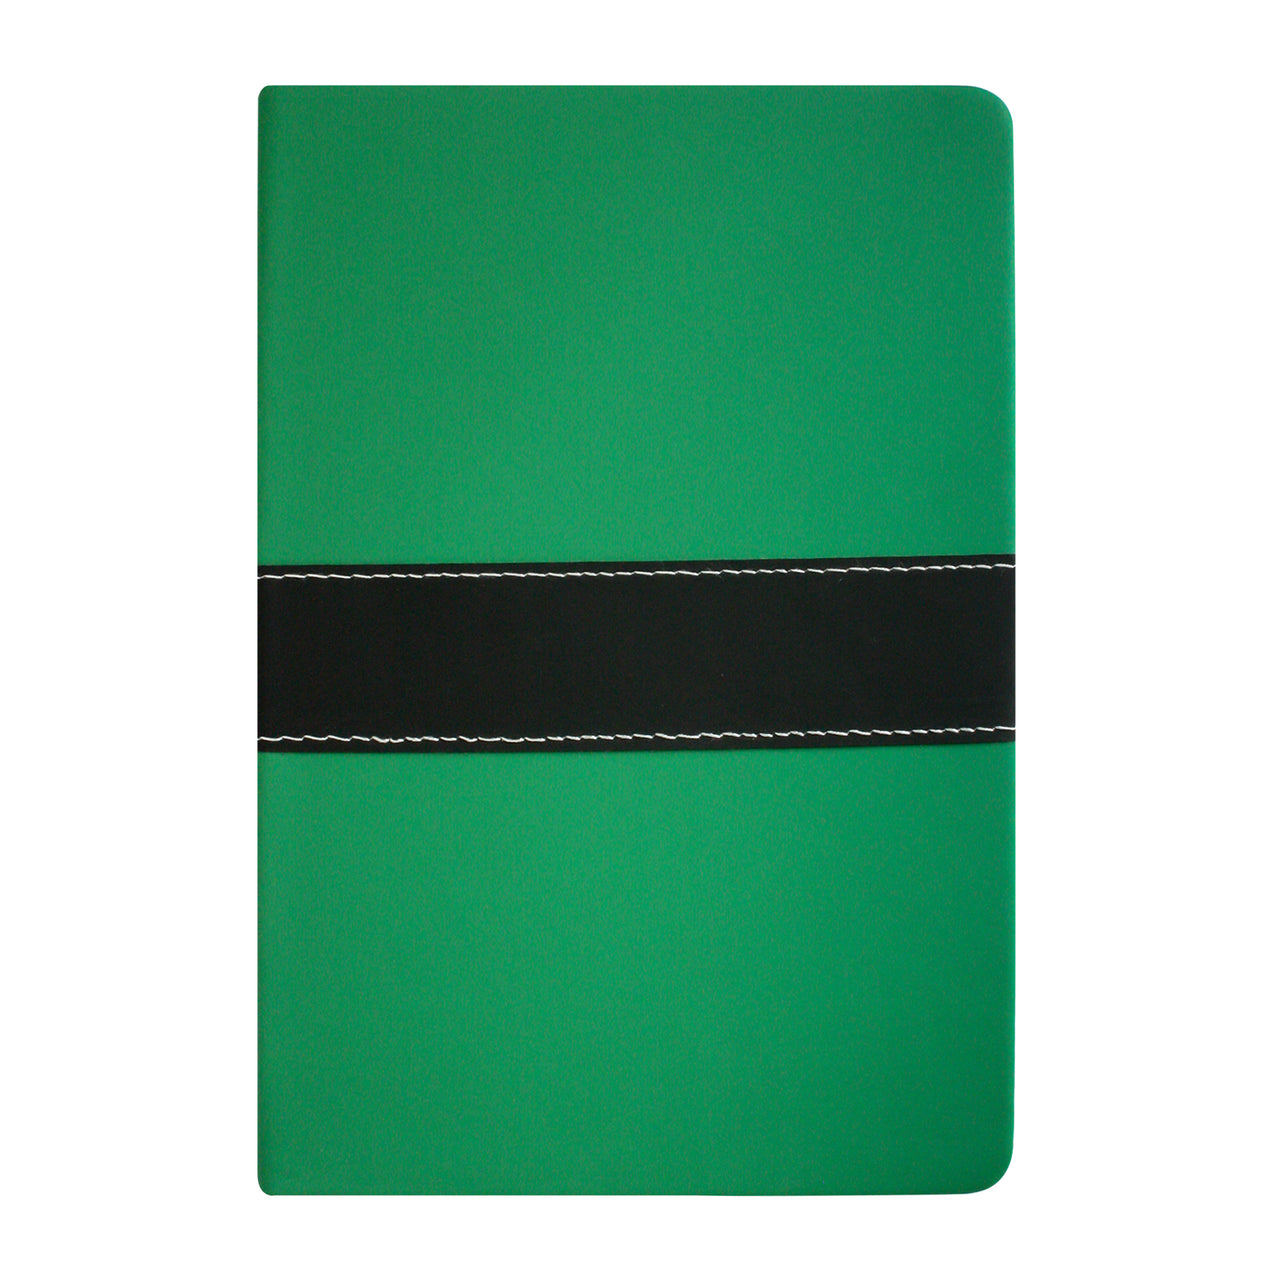 A5 PU Leather Hardbound Notebook - Green - EMARTBUY